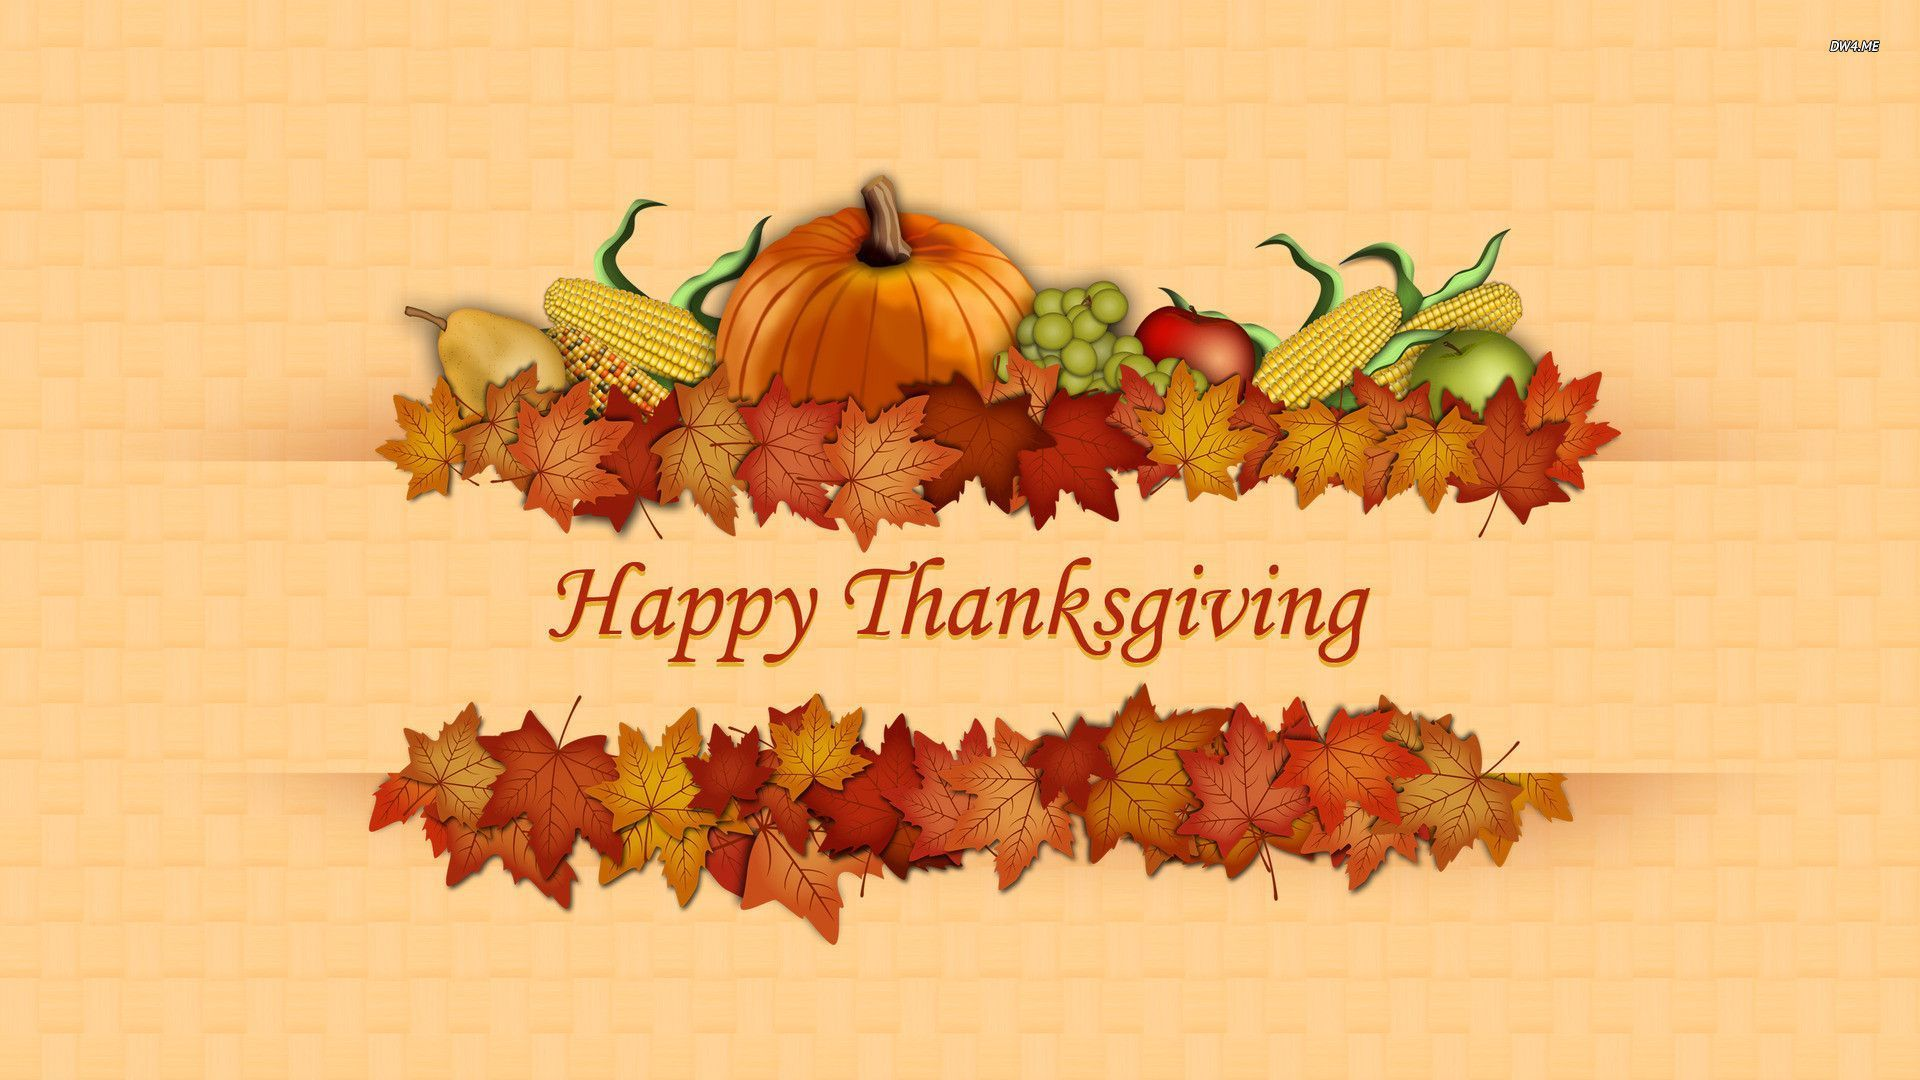 Funny Thanksgiving HD Backgrounds Thanksgiving Pictures 1920x1080